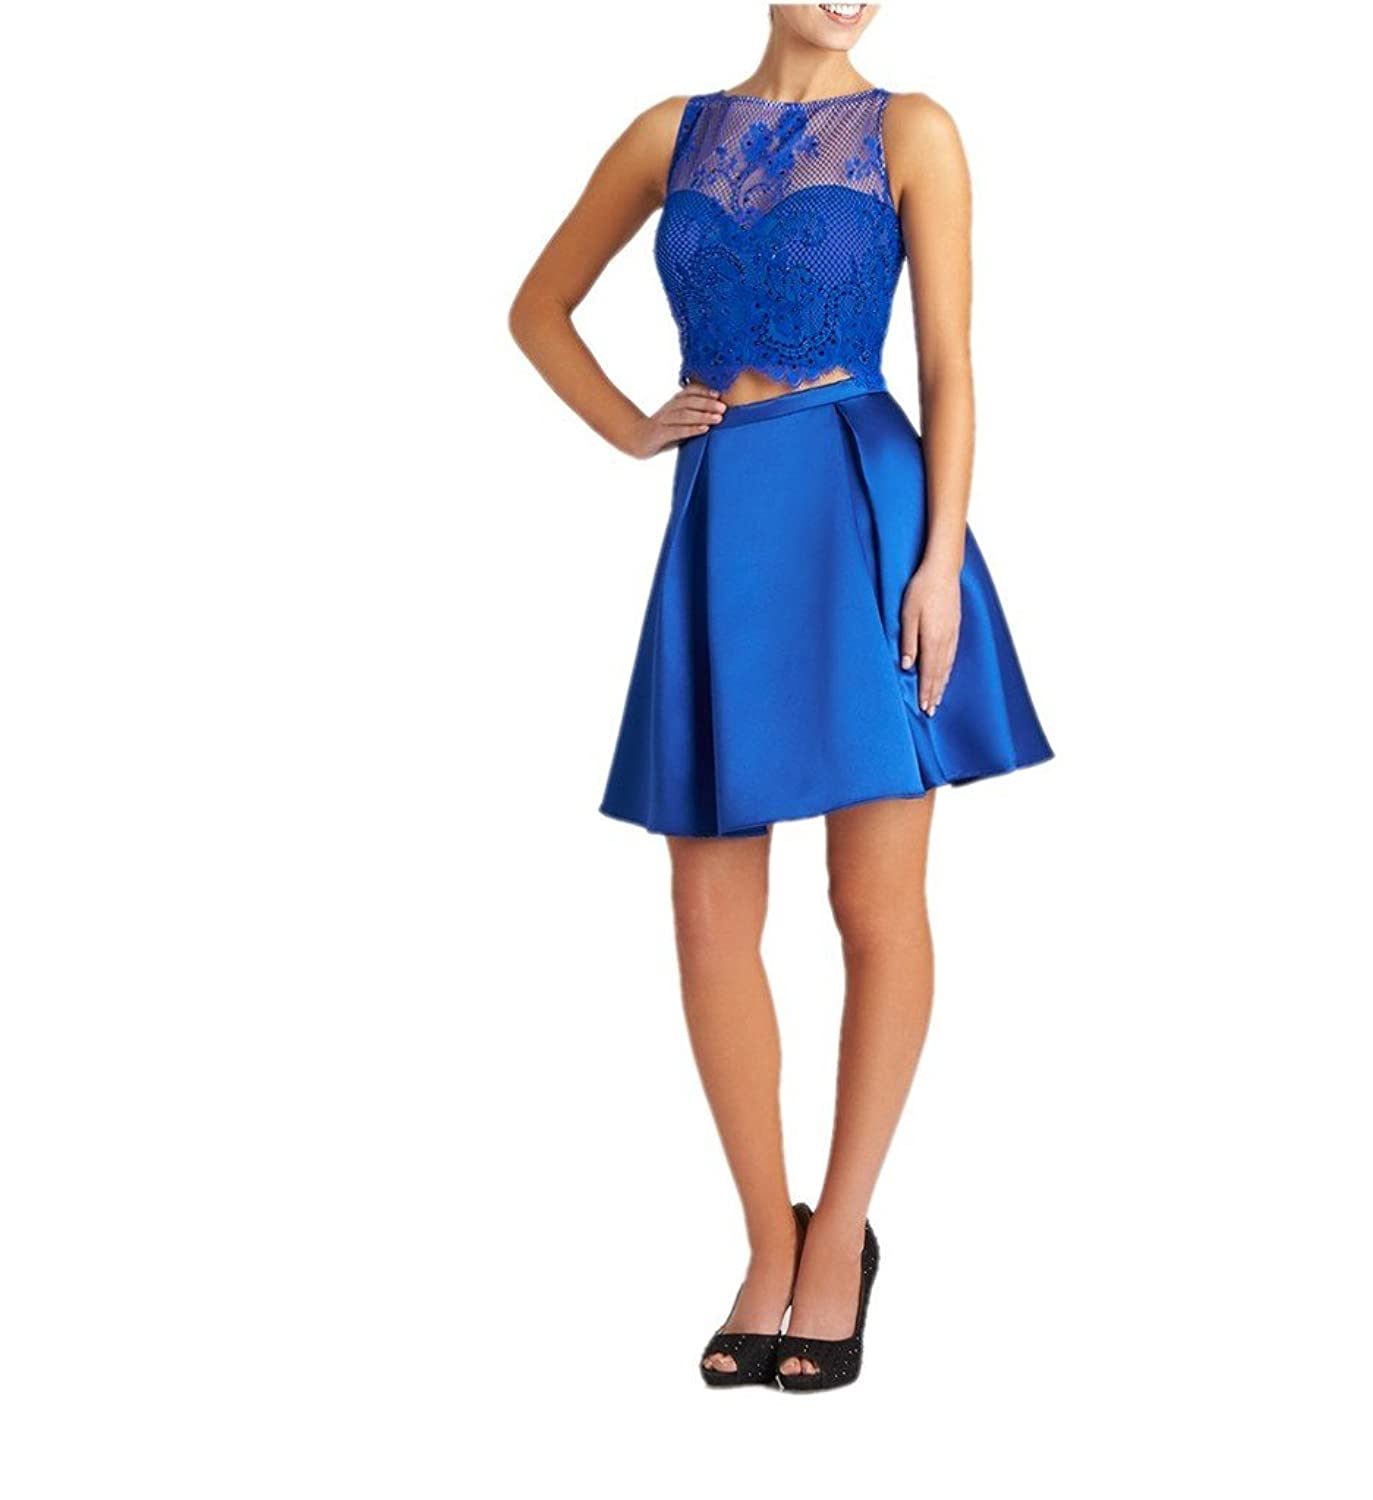 Charm Bridal Satin Cocktail Party Short Homecoming Dress for Girls two piece